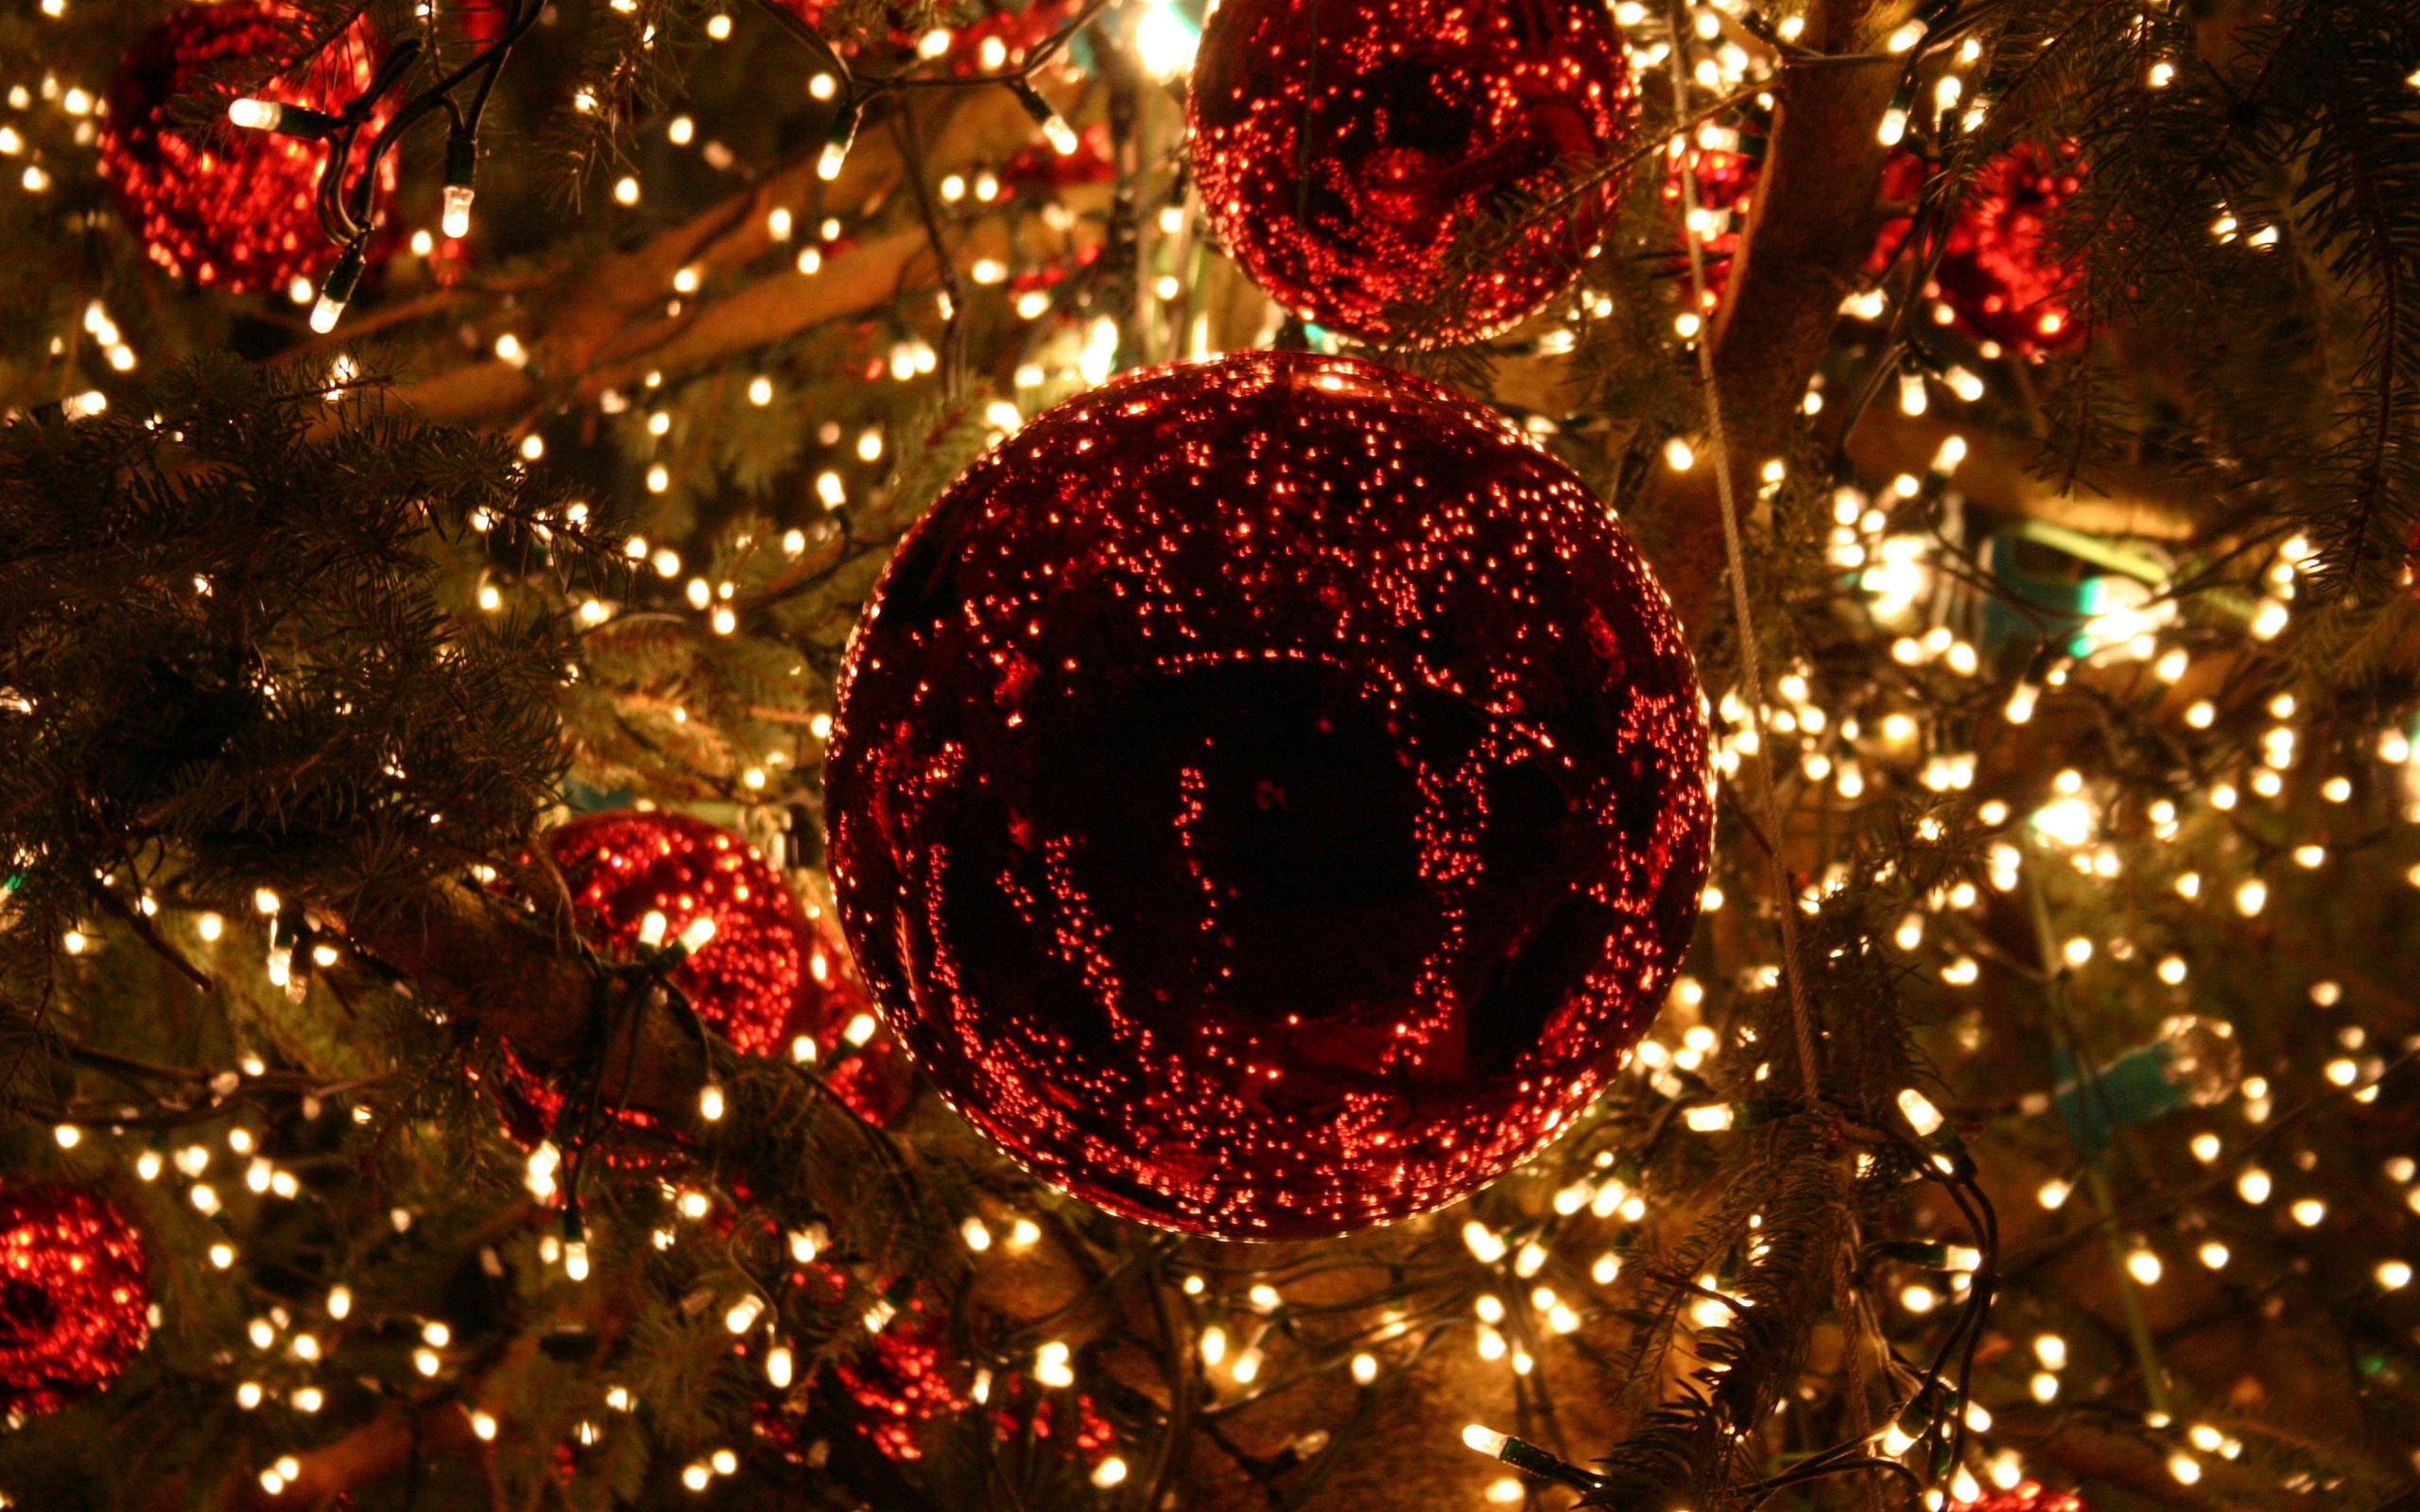 Collection-of-beautiful-Christmas-lights-Let-your-favorite-desktop-get-lighted-up-with-b-wallpaper-wpc5803559